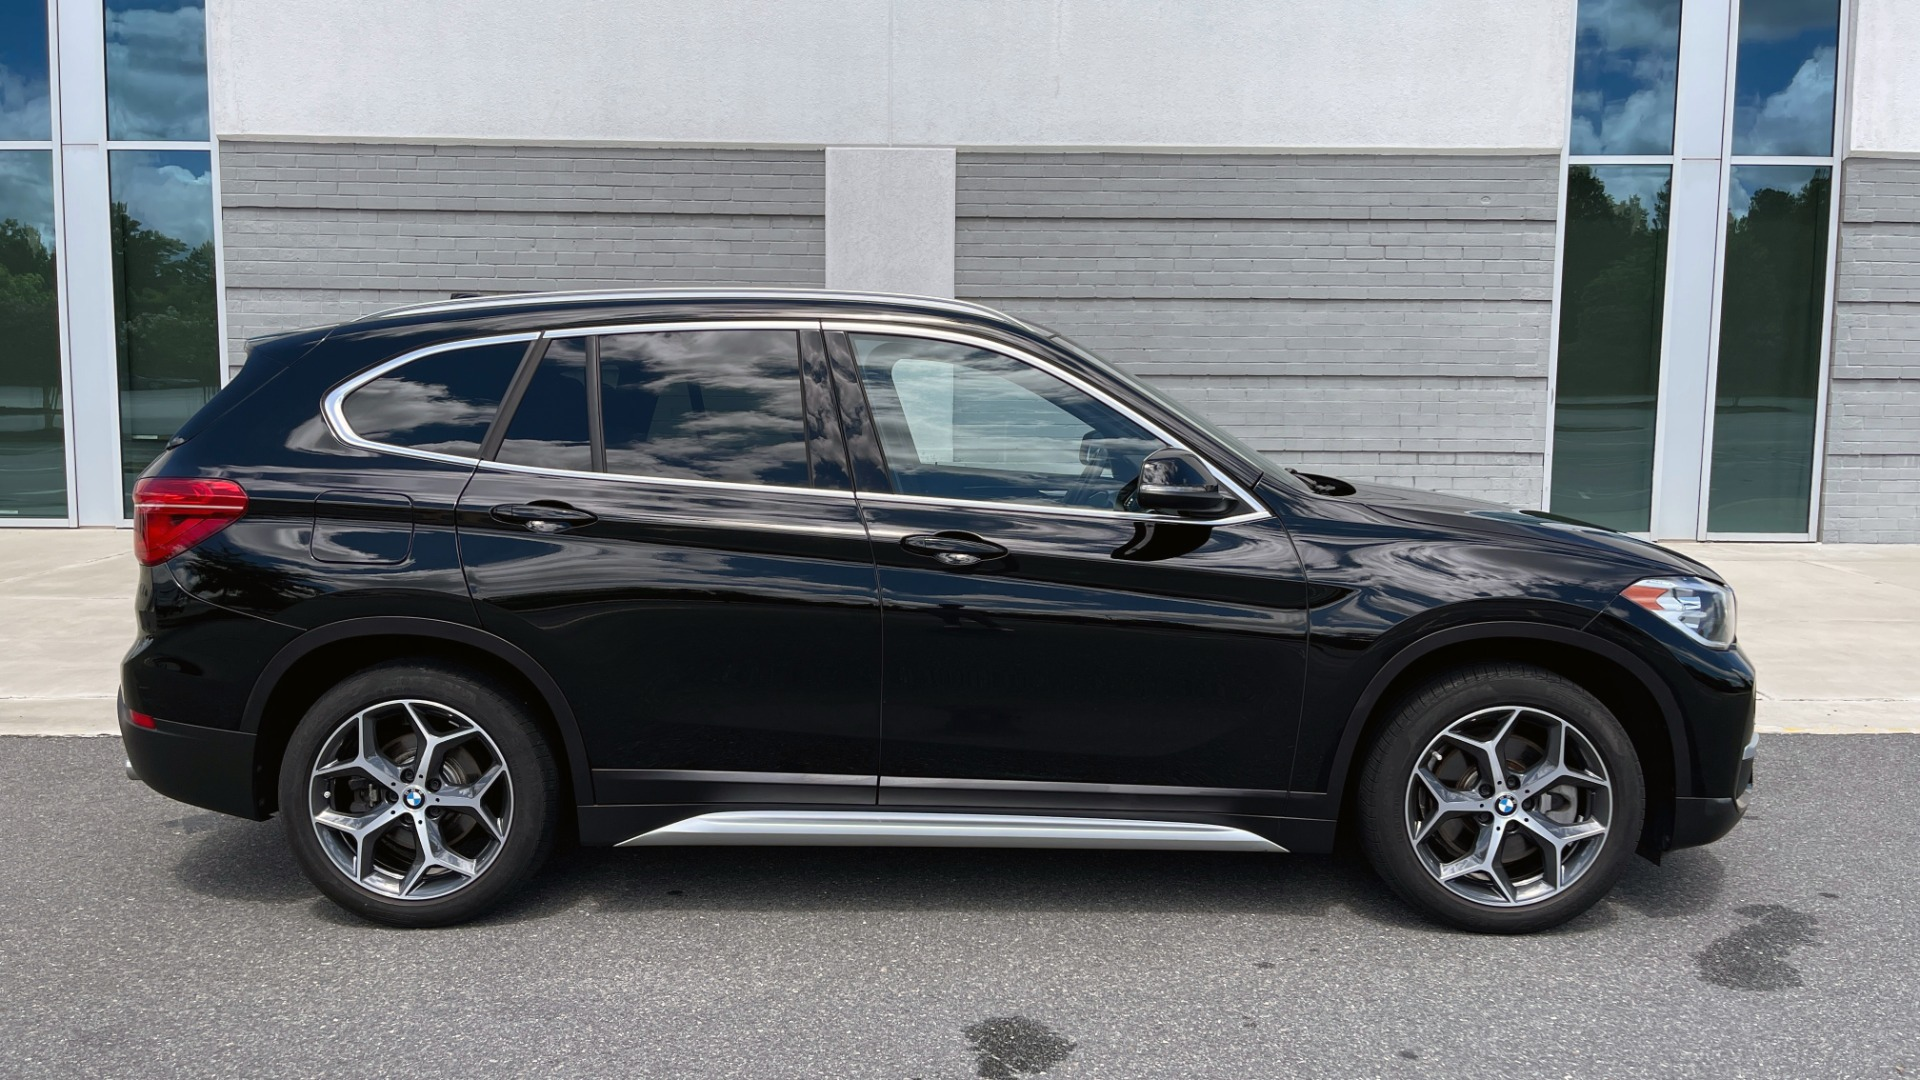 Used 2018 BMW X1 XDRIVE28I / 2.0L / AWD / 8-SPD AUTO / REARVIEW for sale $29,395 at Formula Imports in Charlotte NC 28227 7